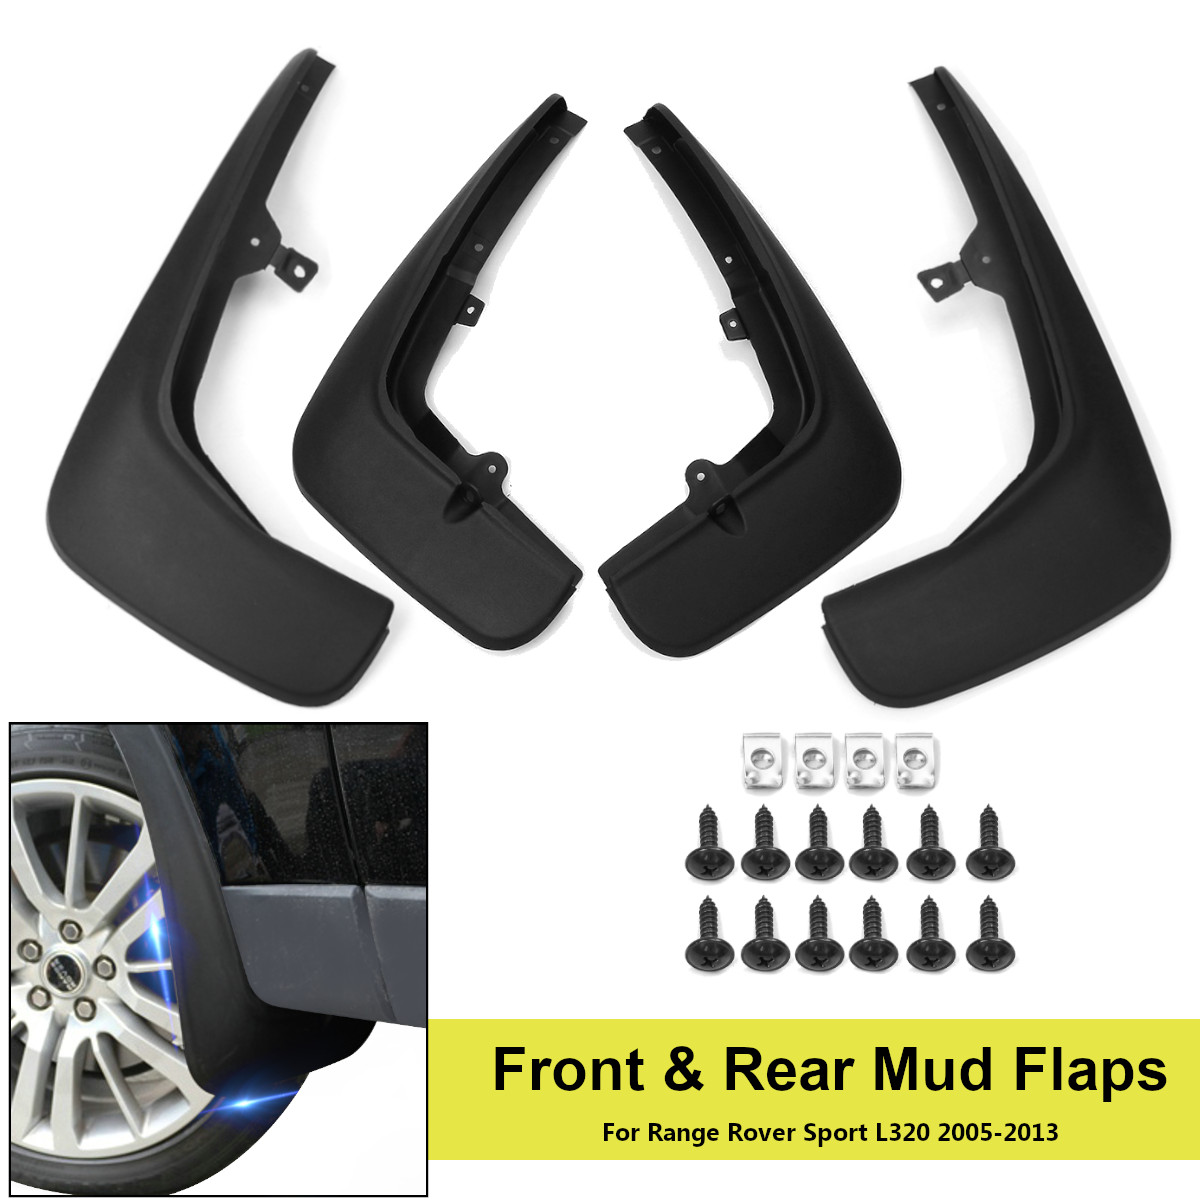 Front Rear Car Mud Flaps For Range Rover Sport L319 2005 2013 Mudguards for Fender Mudflaps